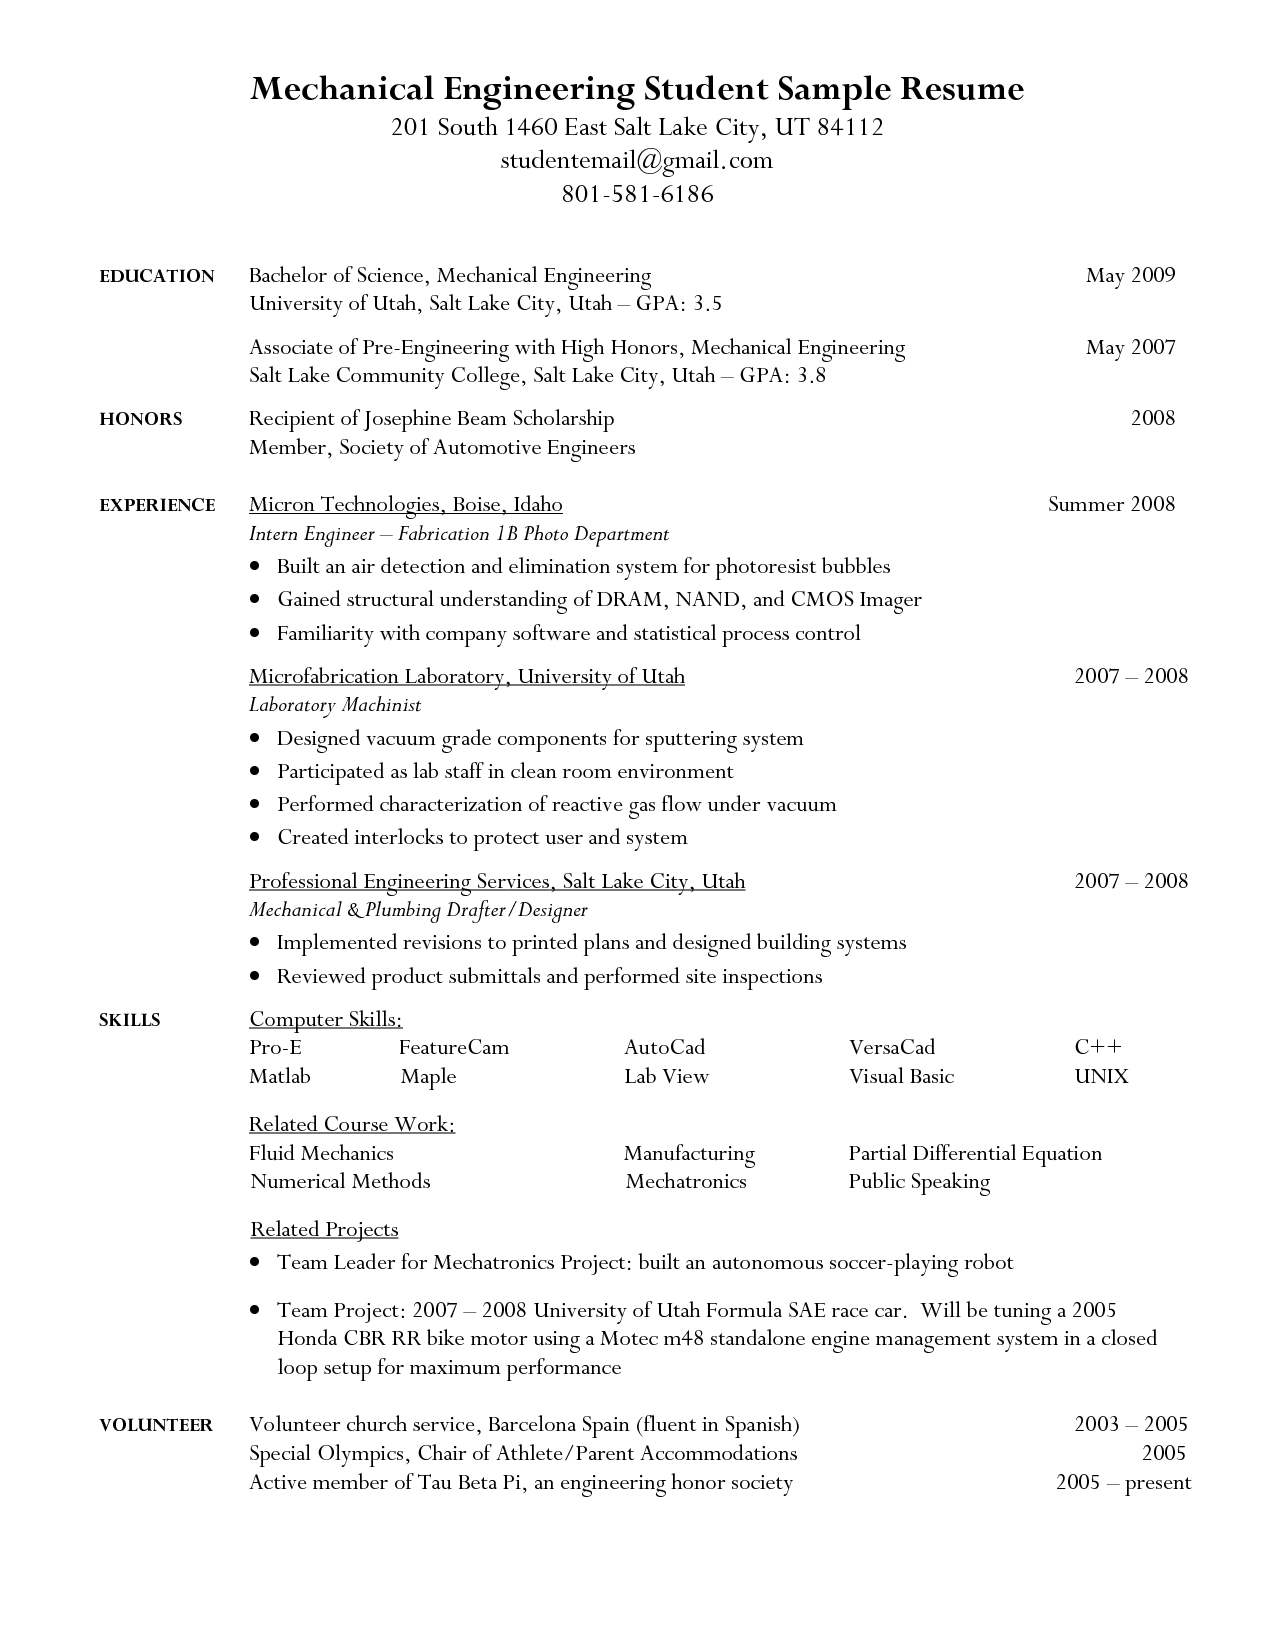 Samples Of Resumes For College Students Engineering Student Resume Google Search Resumes